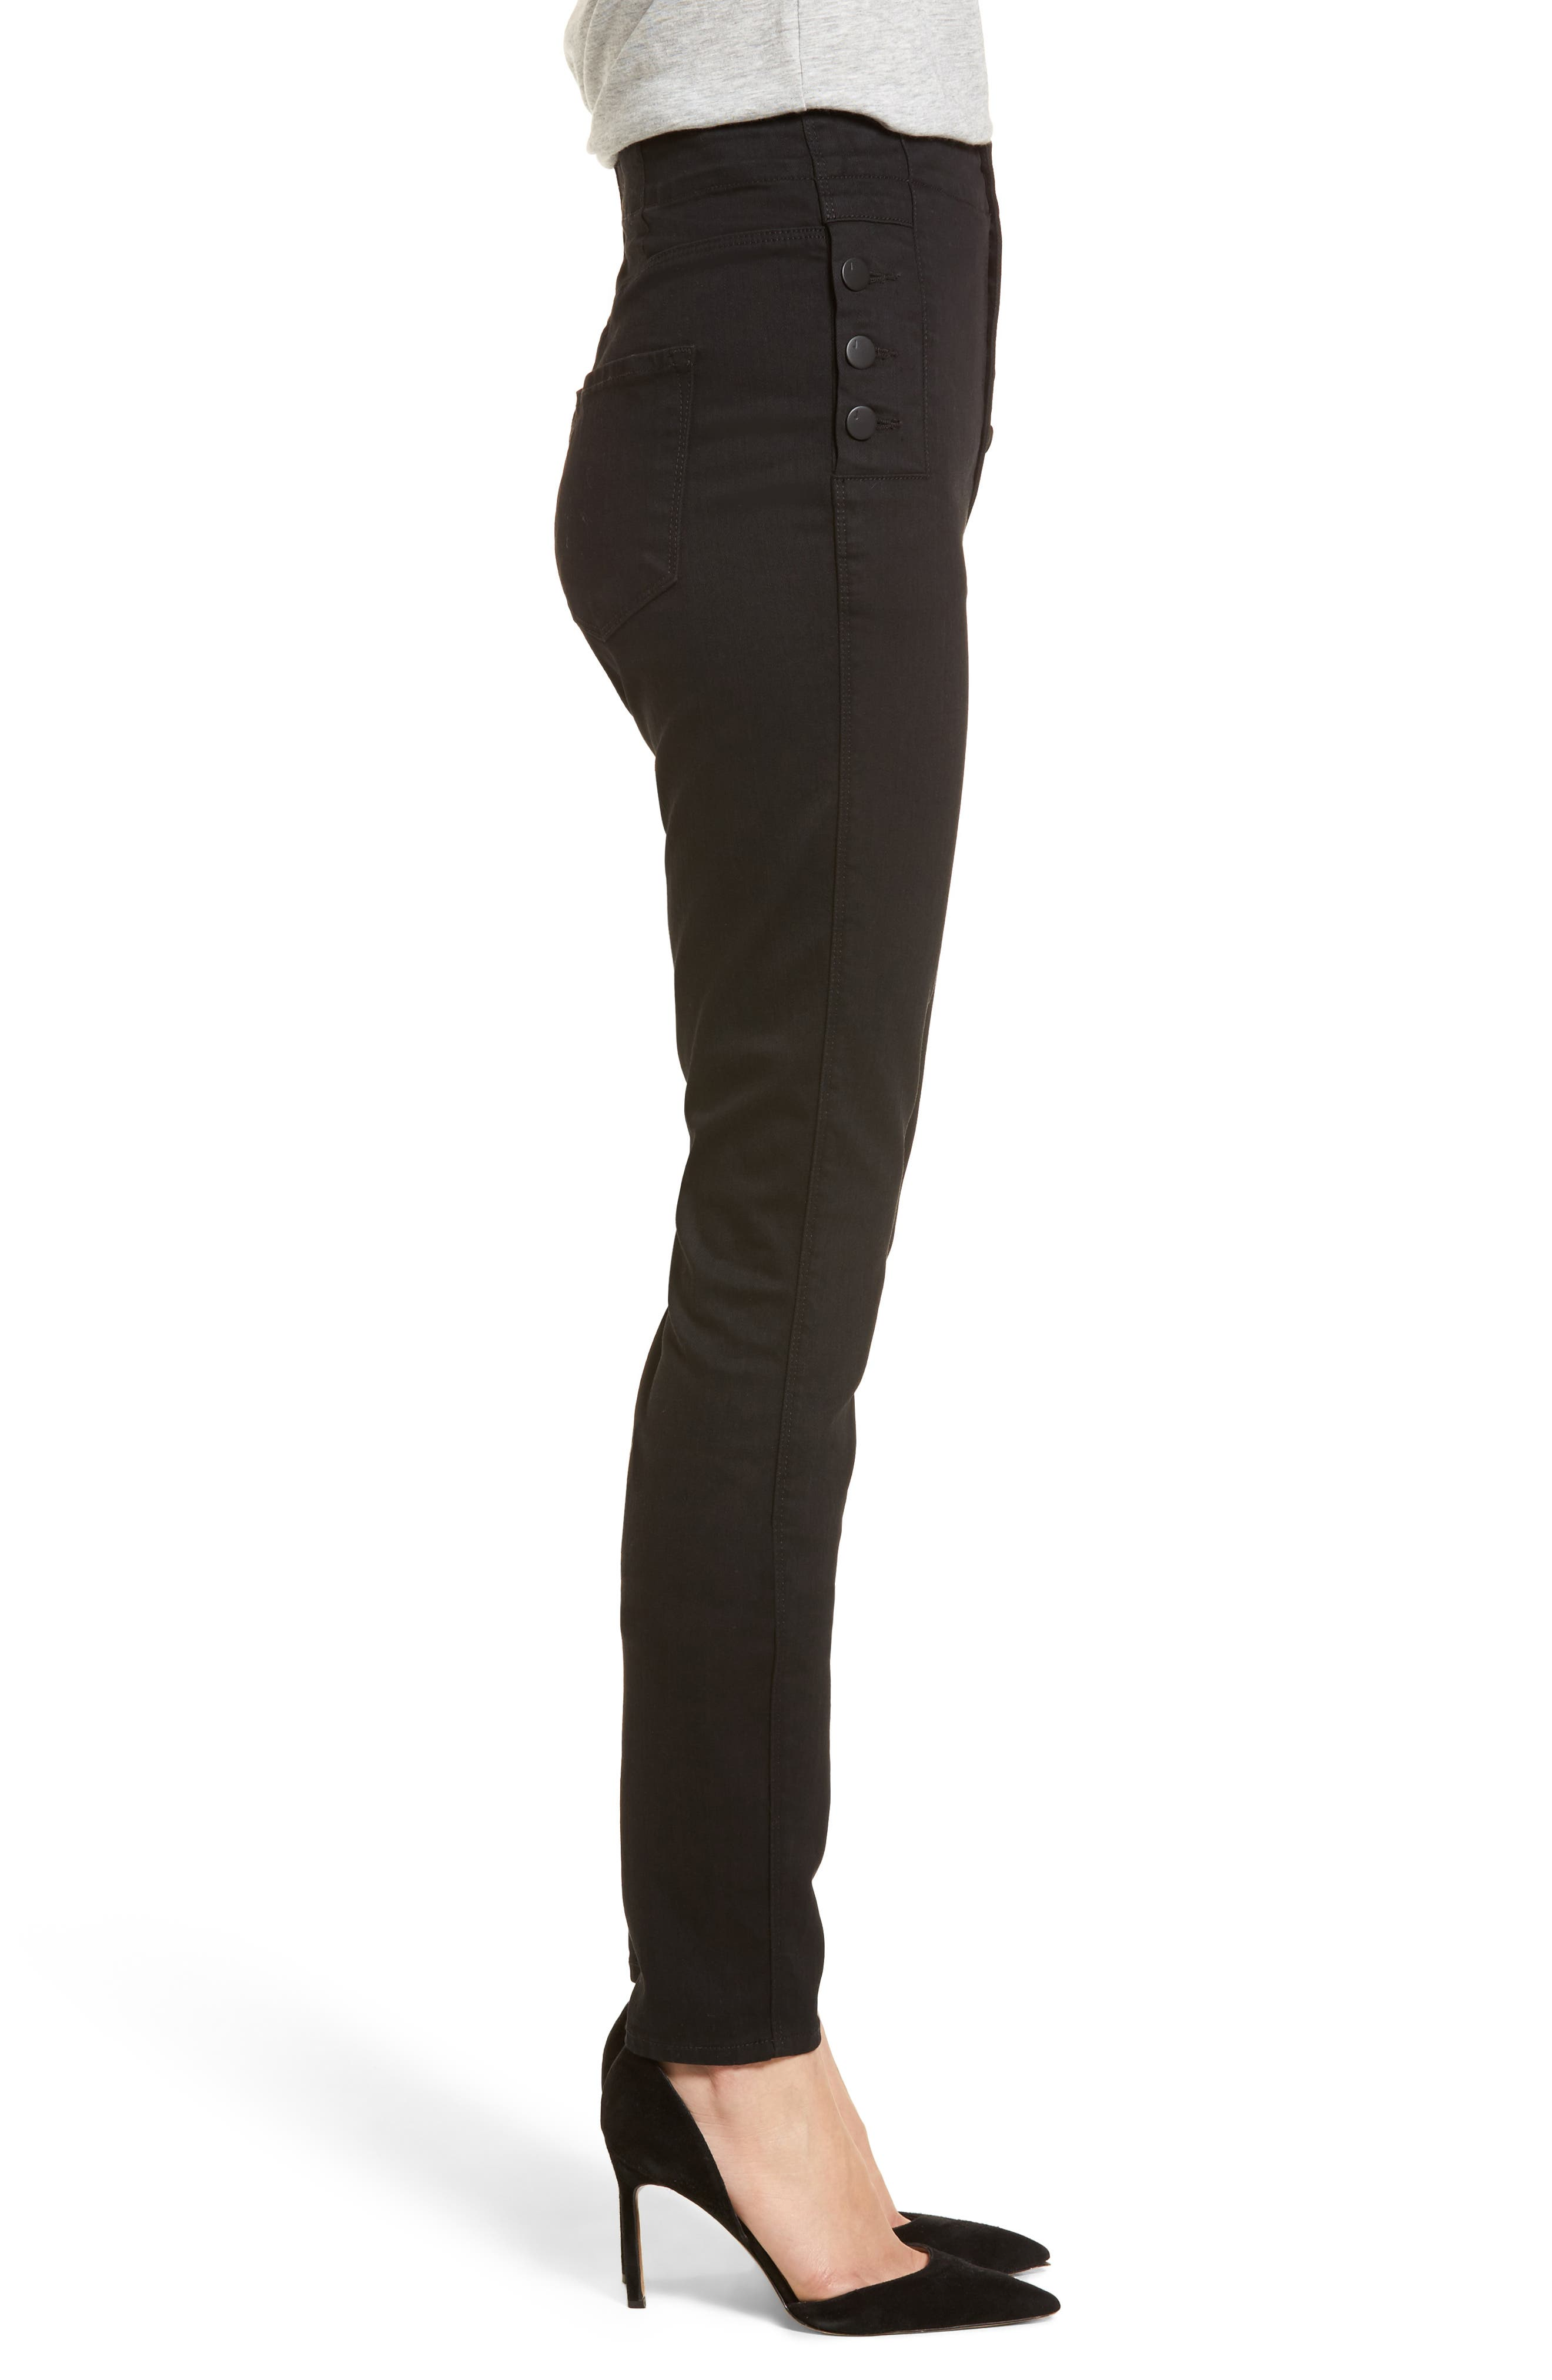 Natasha Photoready High Waist Skinny Jeans,                             Alternate thumbnail 3, color,                             Vanity